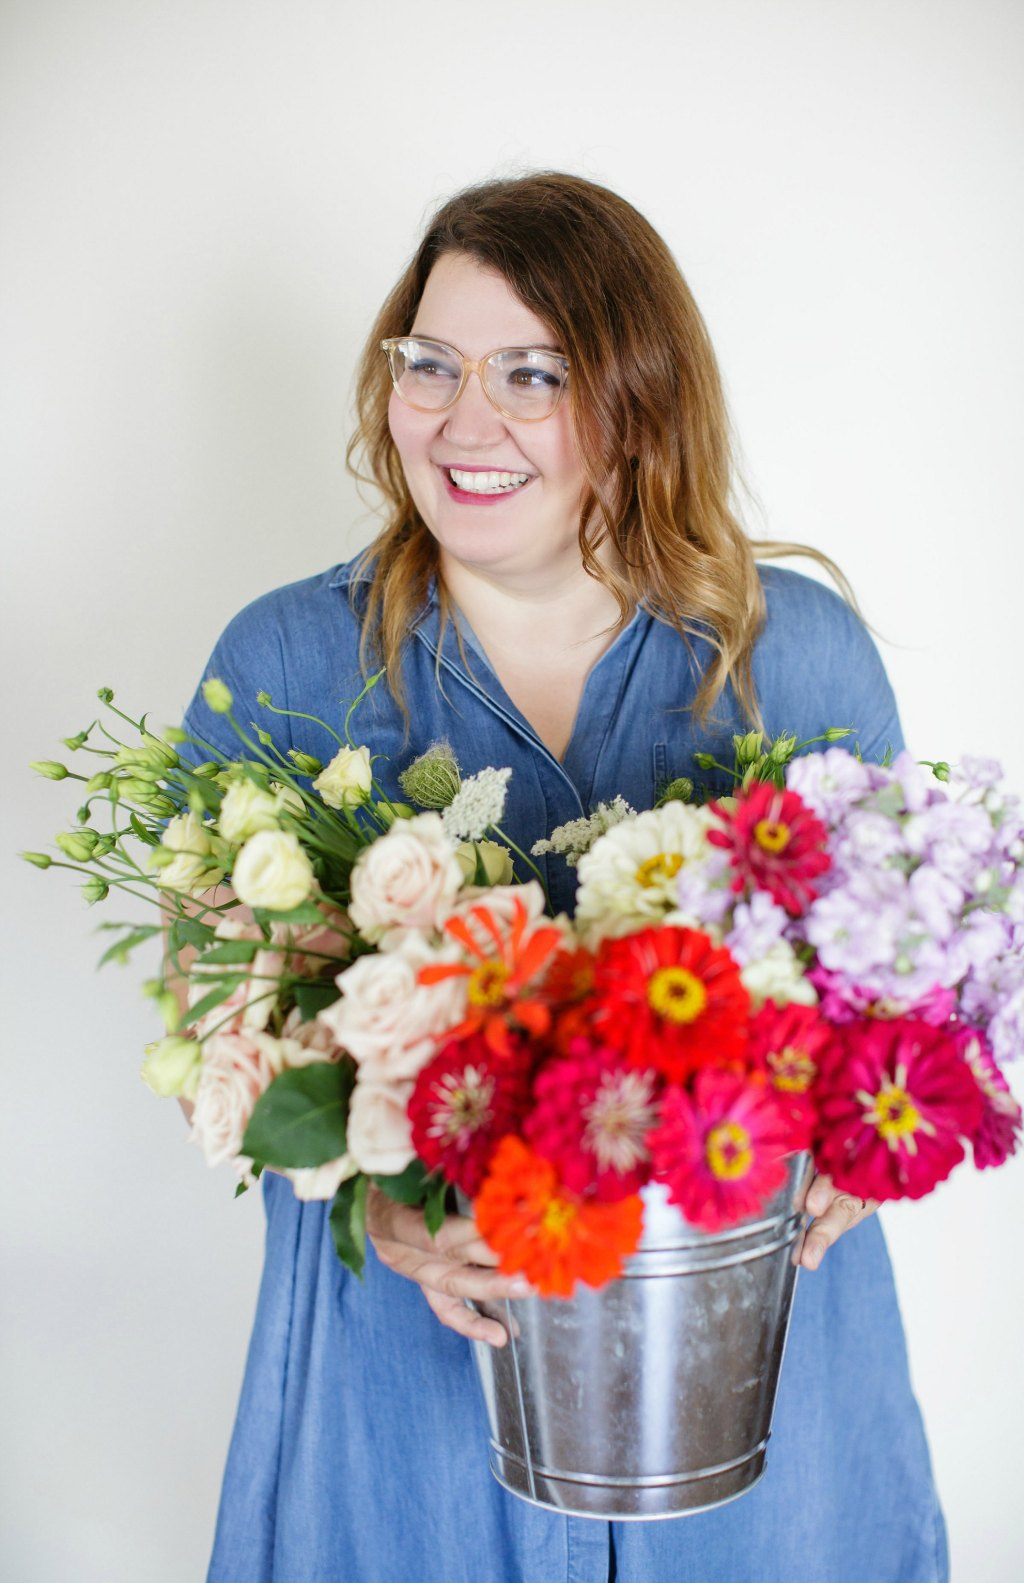 how-to-style-a-simple-flower-arrangement-rose-city-style-guide-bourbon-rose-floral-design-co-lifestyle-canadian-blog-2